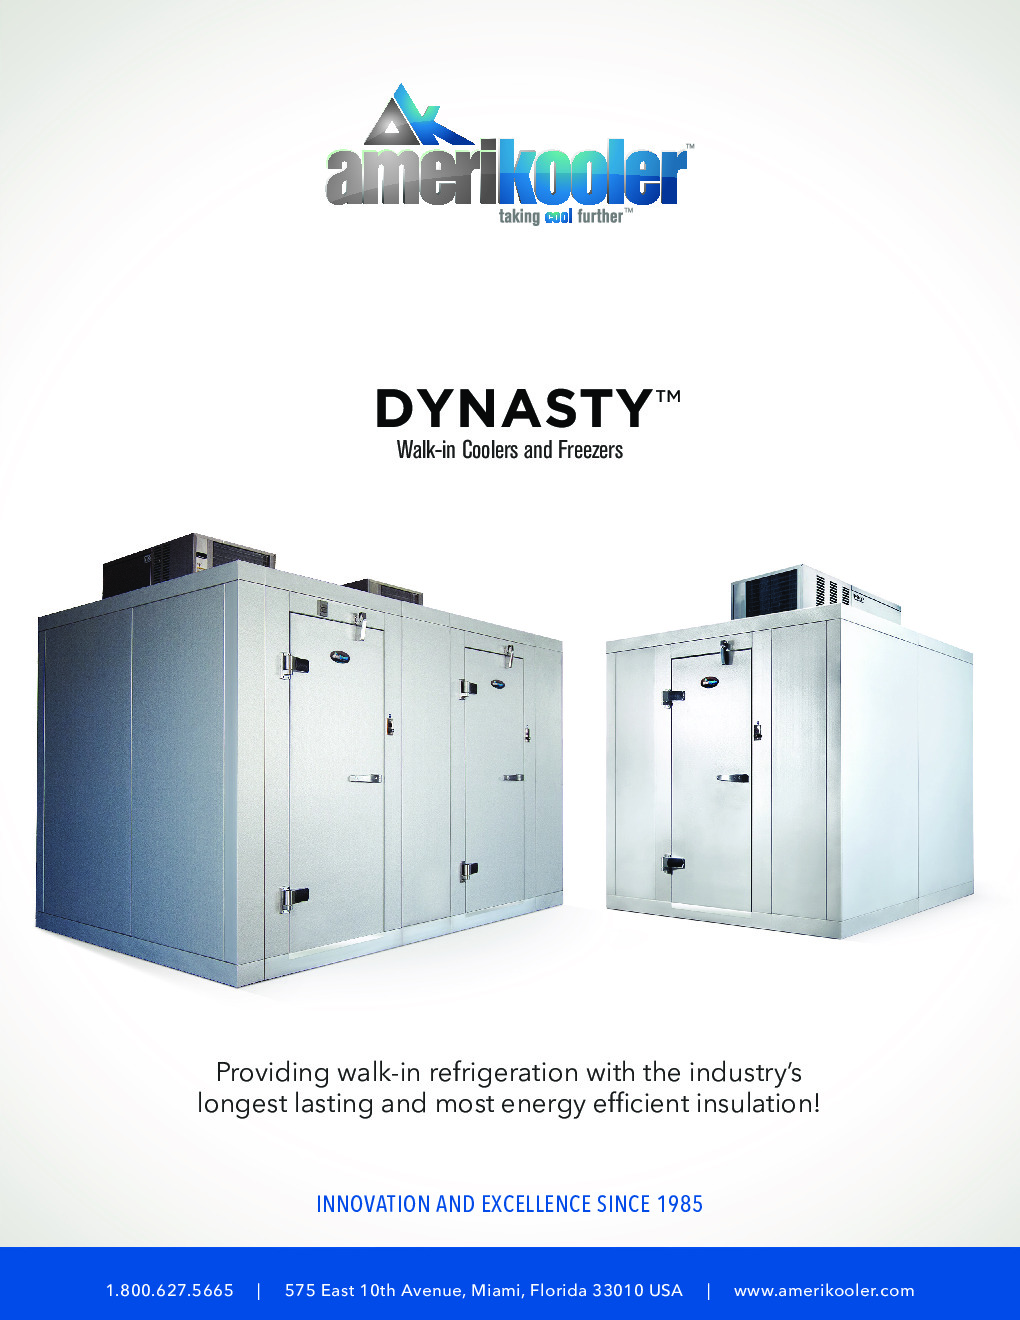 AmeriKooler DW091477N-5/9-SC 9' X 14' Walk-In Cooler, 9' L Cooler without Floor and 5' L Freezer, Self Contained